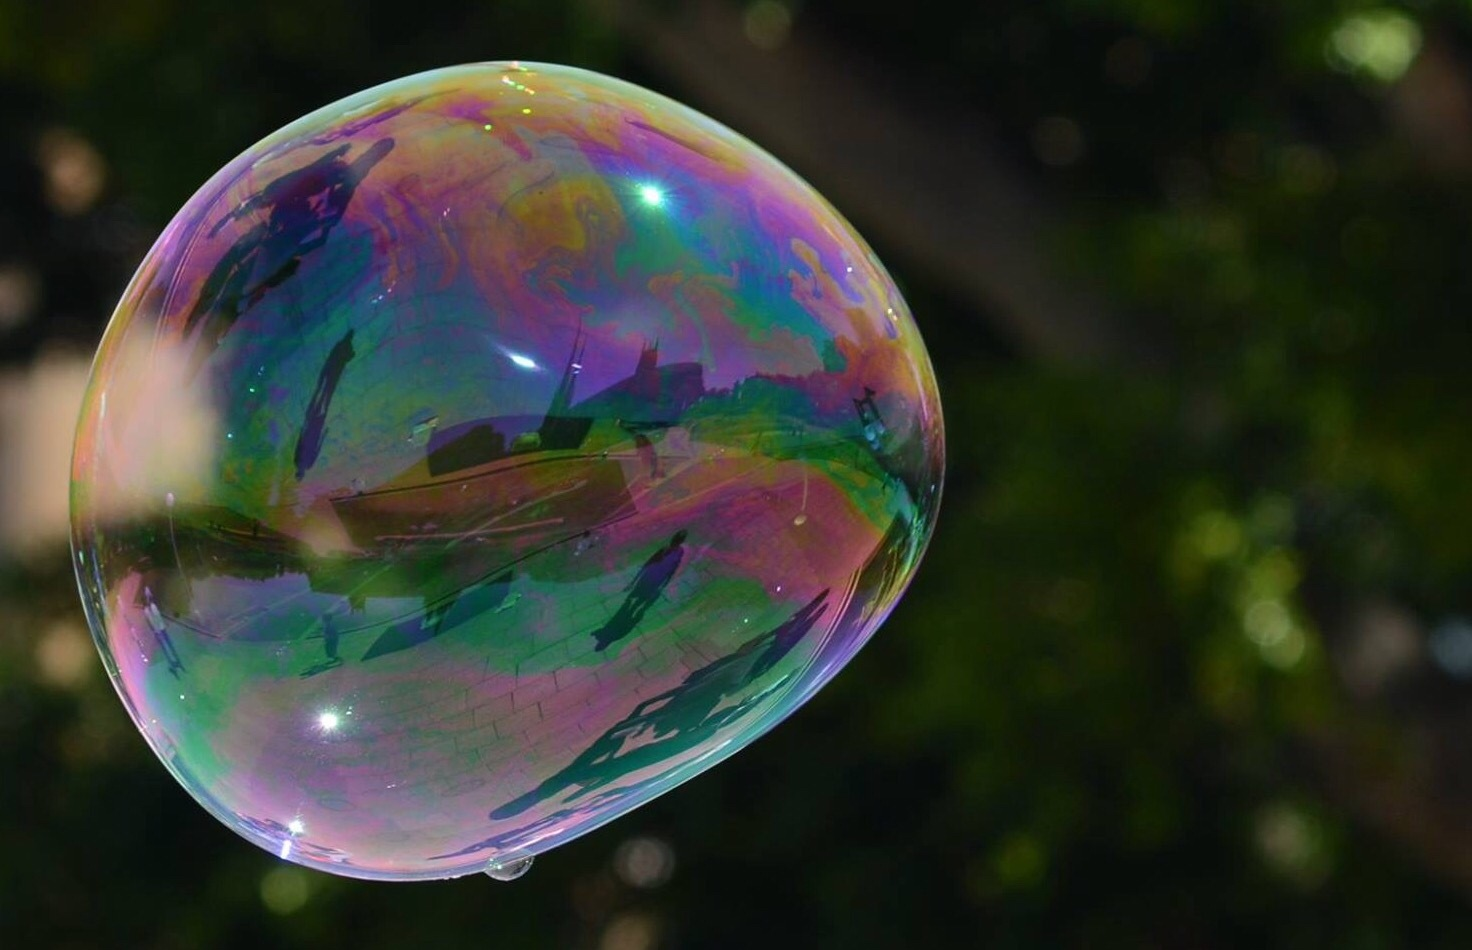 Rainbow reflection by Veronica Brown